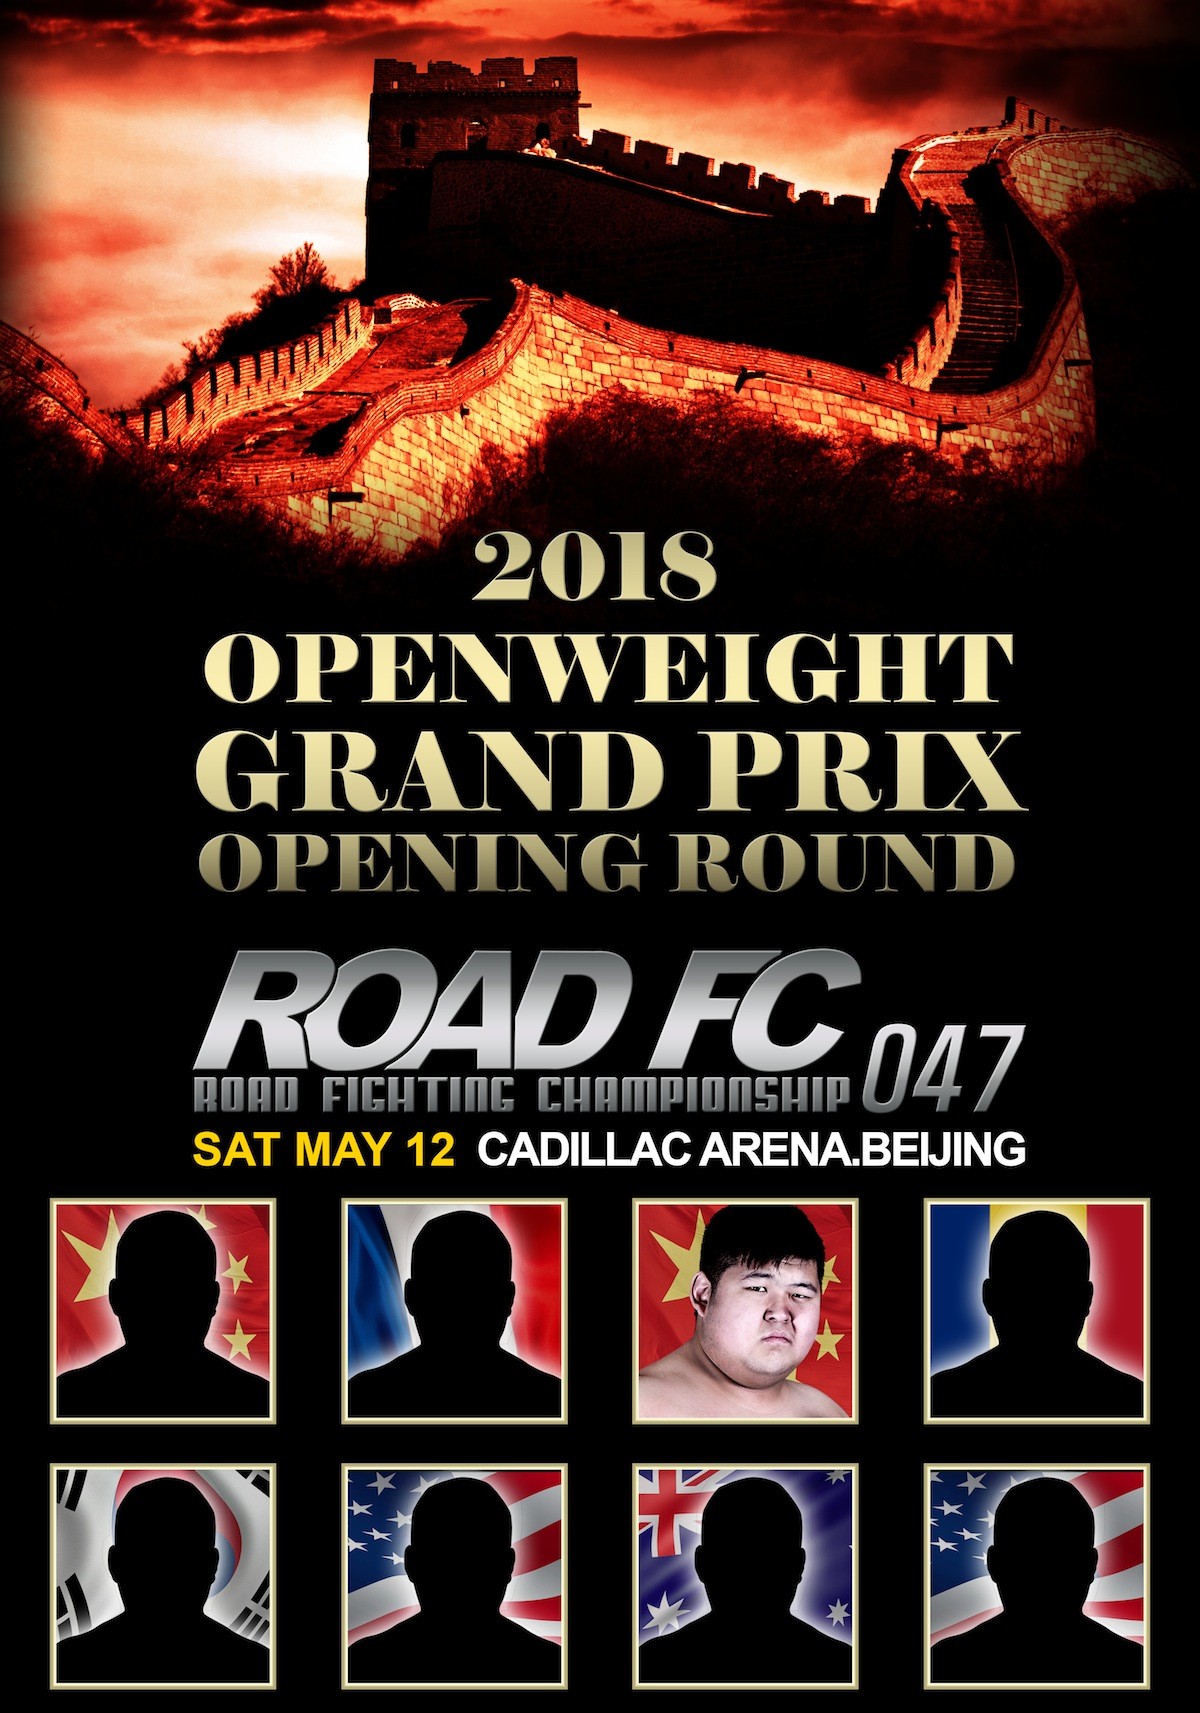 XIAOMI ROAD FC 047 OPENING ANNOUNCEMENT 2018 OPENWEIGHT GRAND PRIX KICKS OFF IN BEIJING, CHINA -